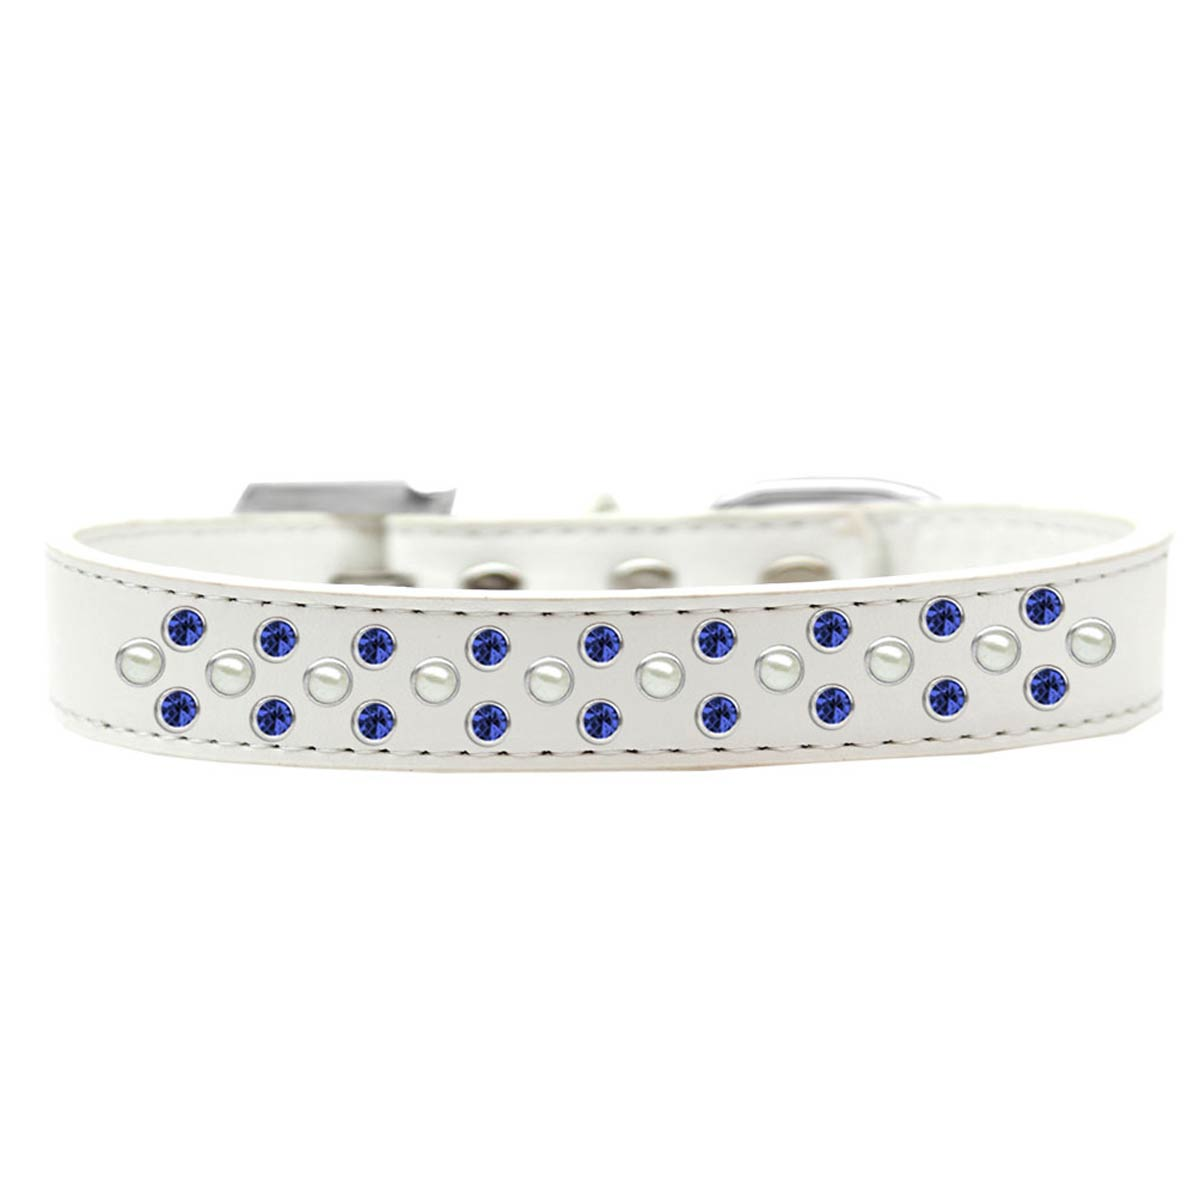 Sprinkles Pearl and Blue Crystals Dog Collar - White